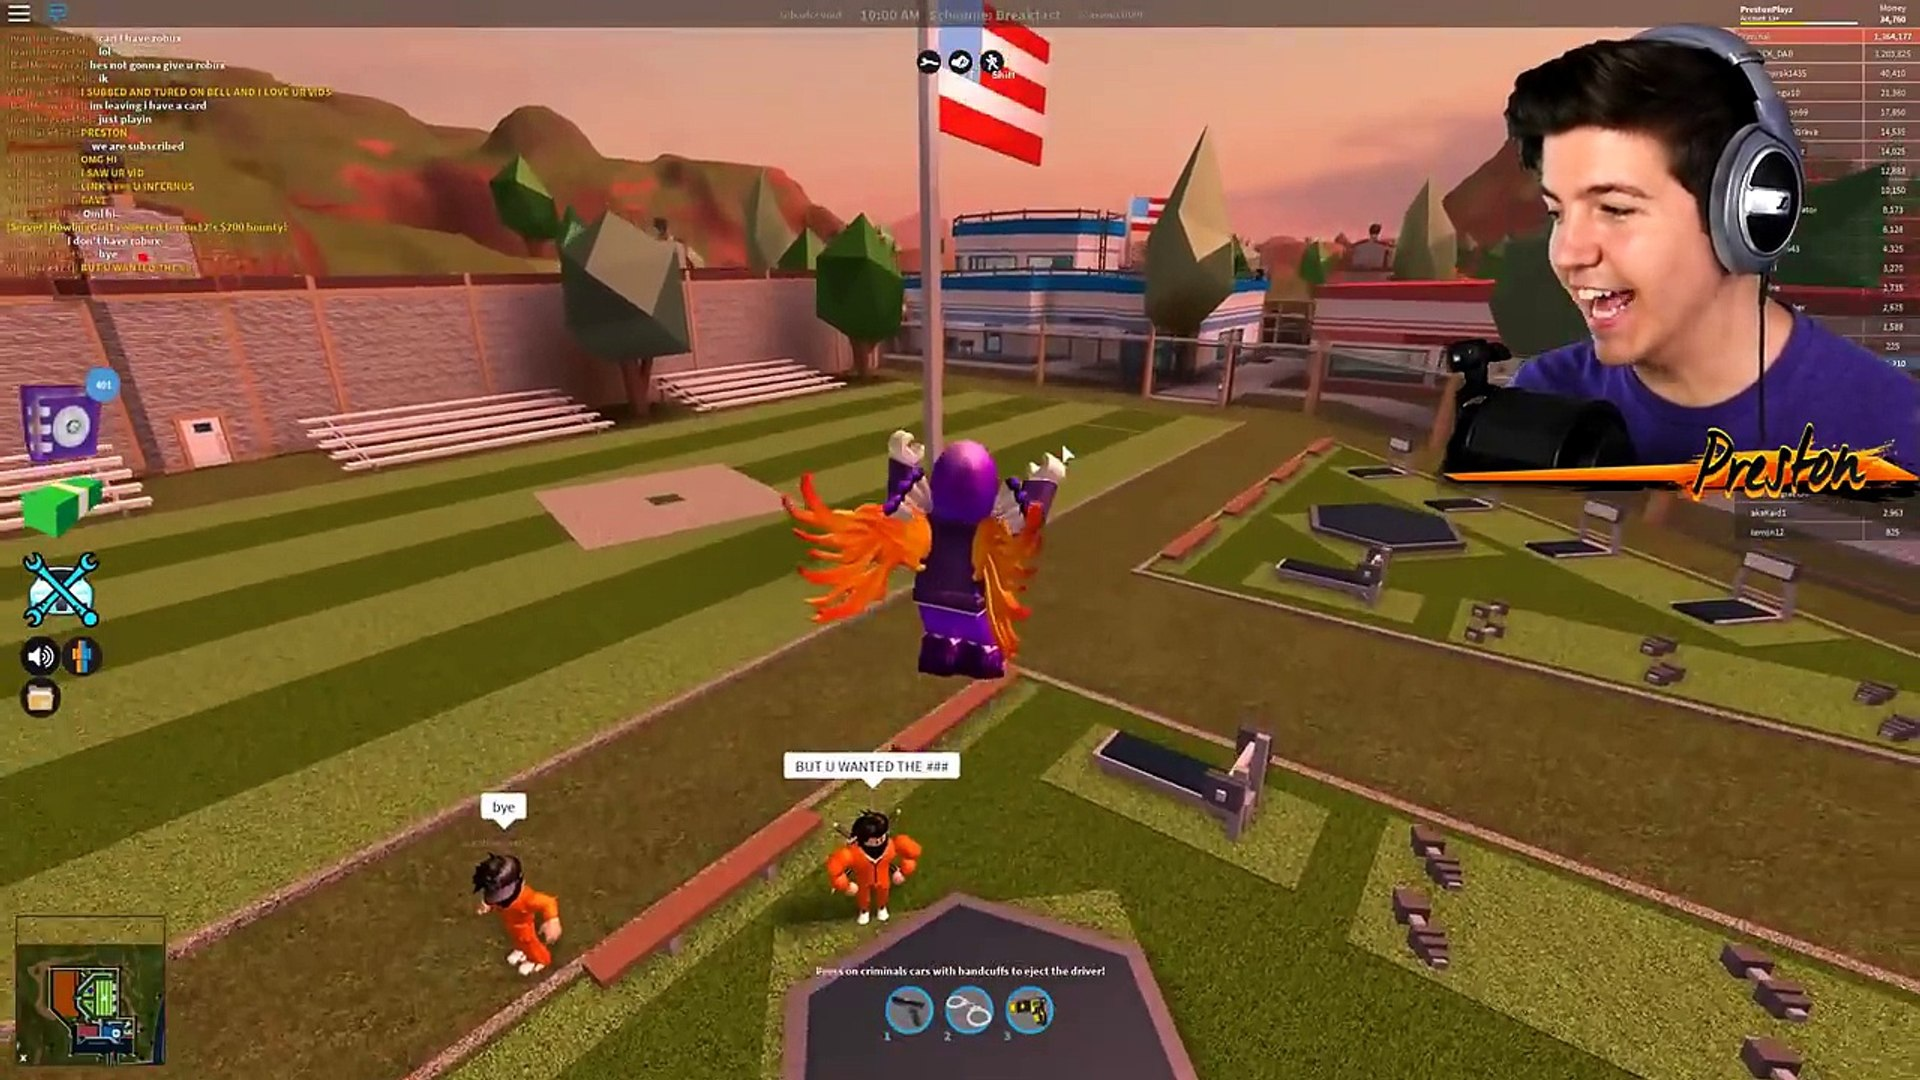 How To Play Music In Roblox Jailbreak On Mobile Arresting The Richest Player In Roblox Jailbreak 10 Million